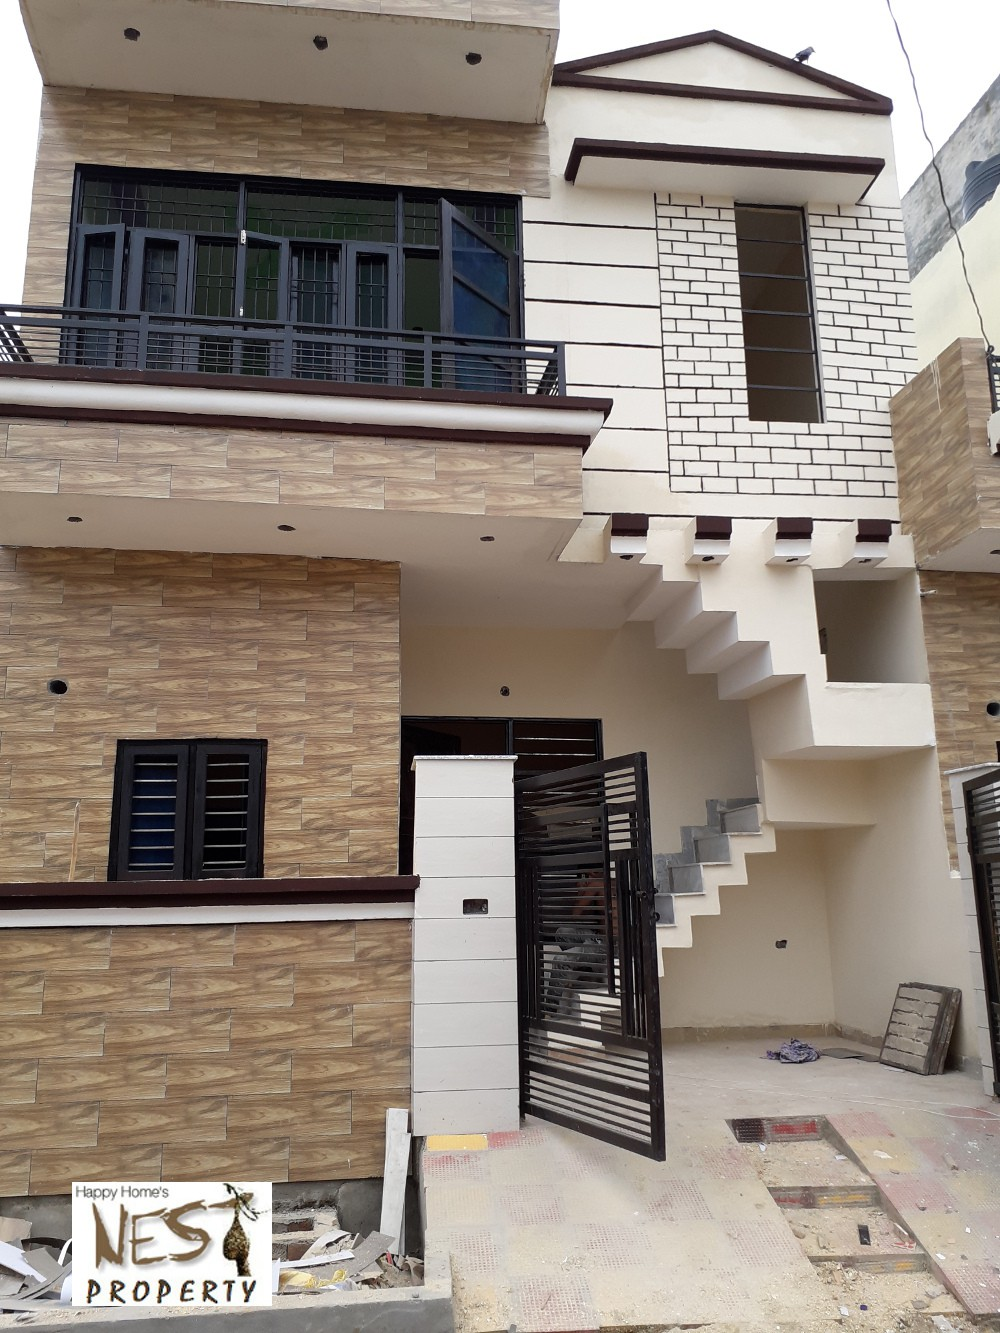 Kothi| House for Sale in Zirakpur , Kothi for sale in Mohali, 85 Sq yards Call-9888777712